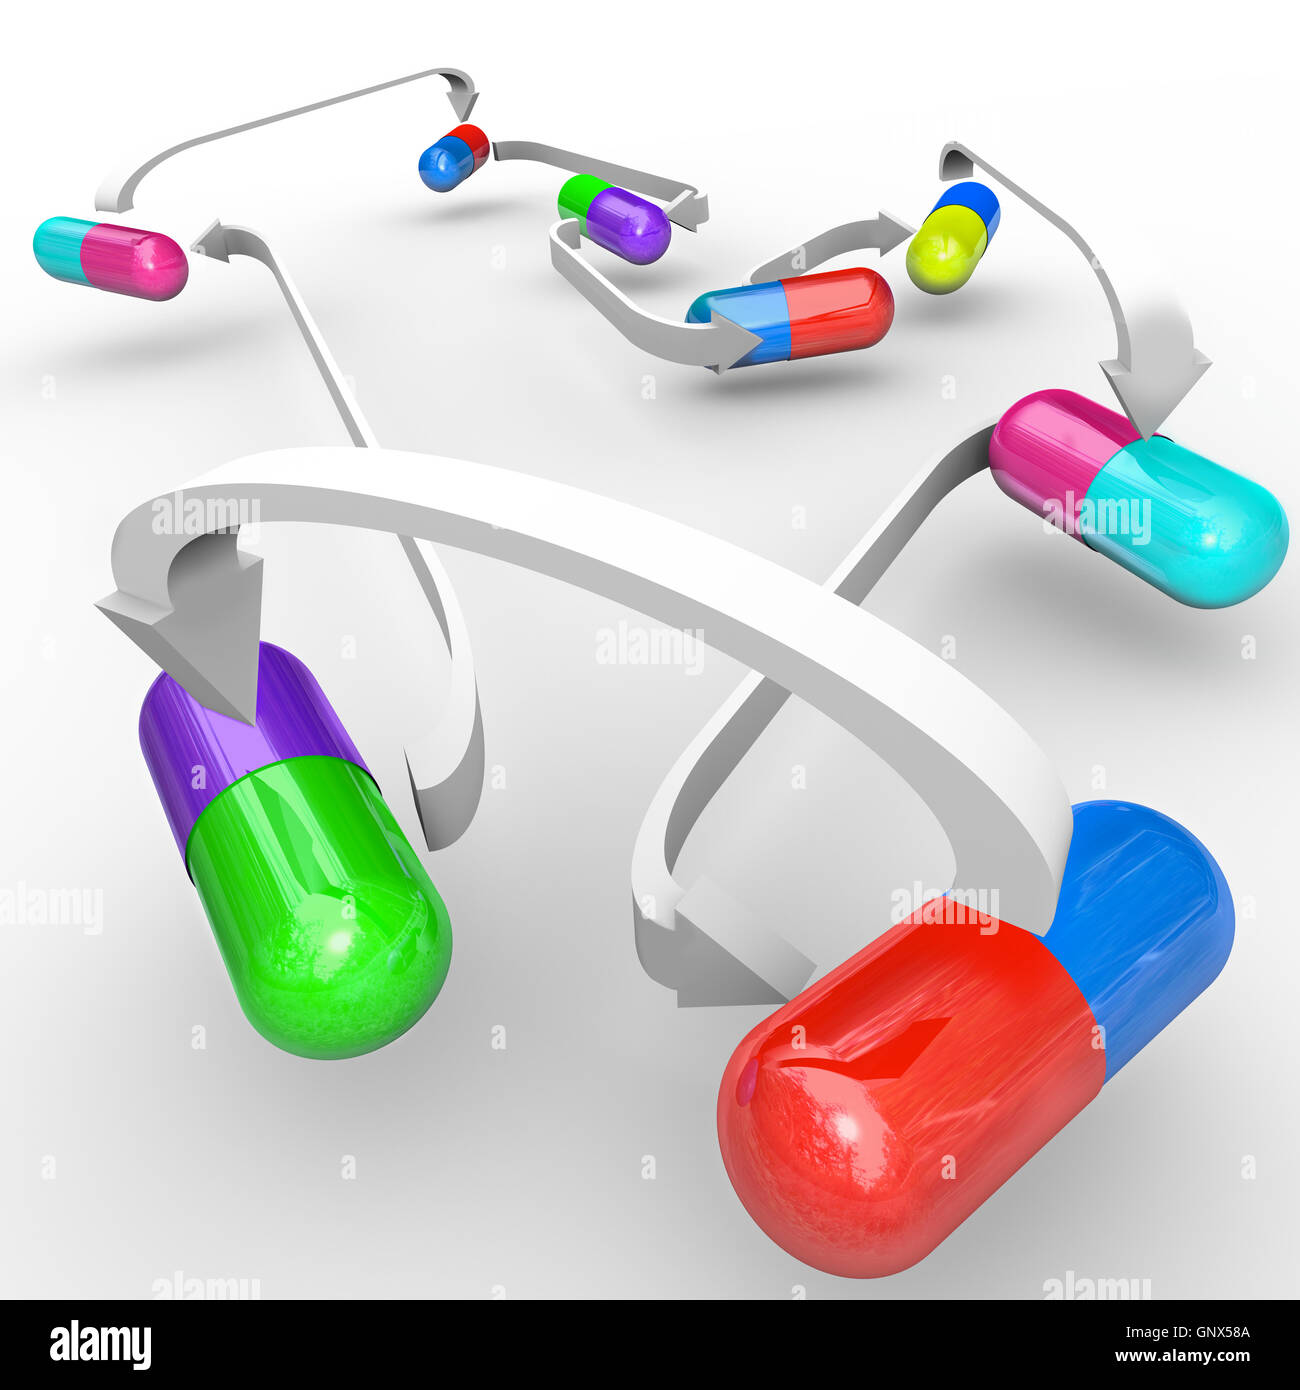 Medicine Drug Interactions Capsules and Pills Connected - Stock Image